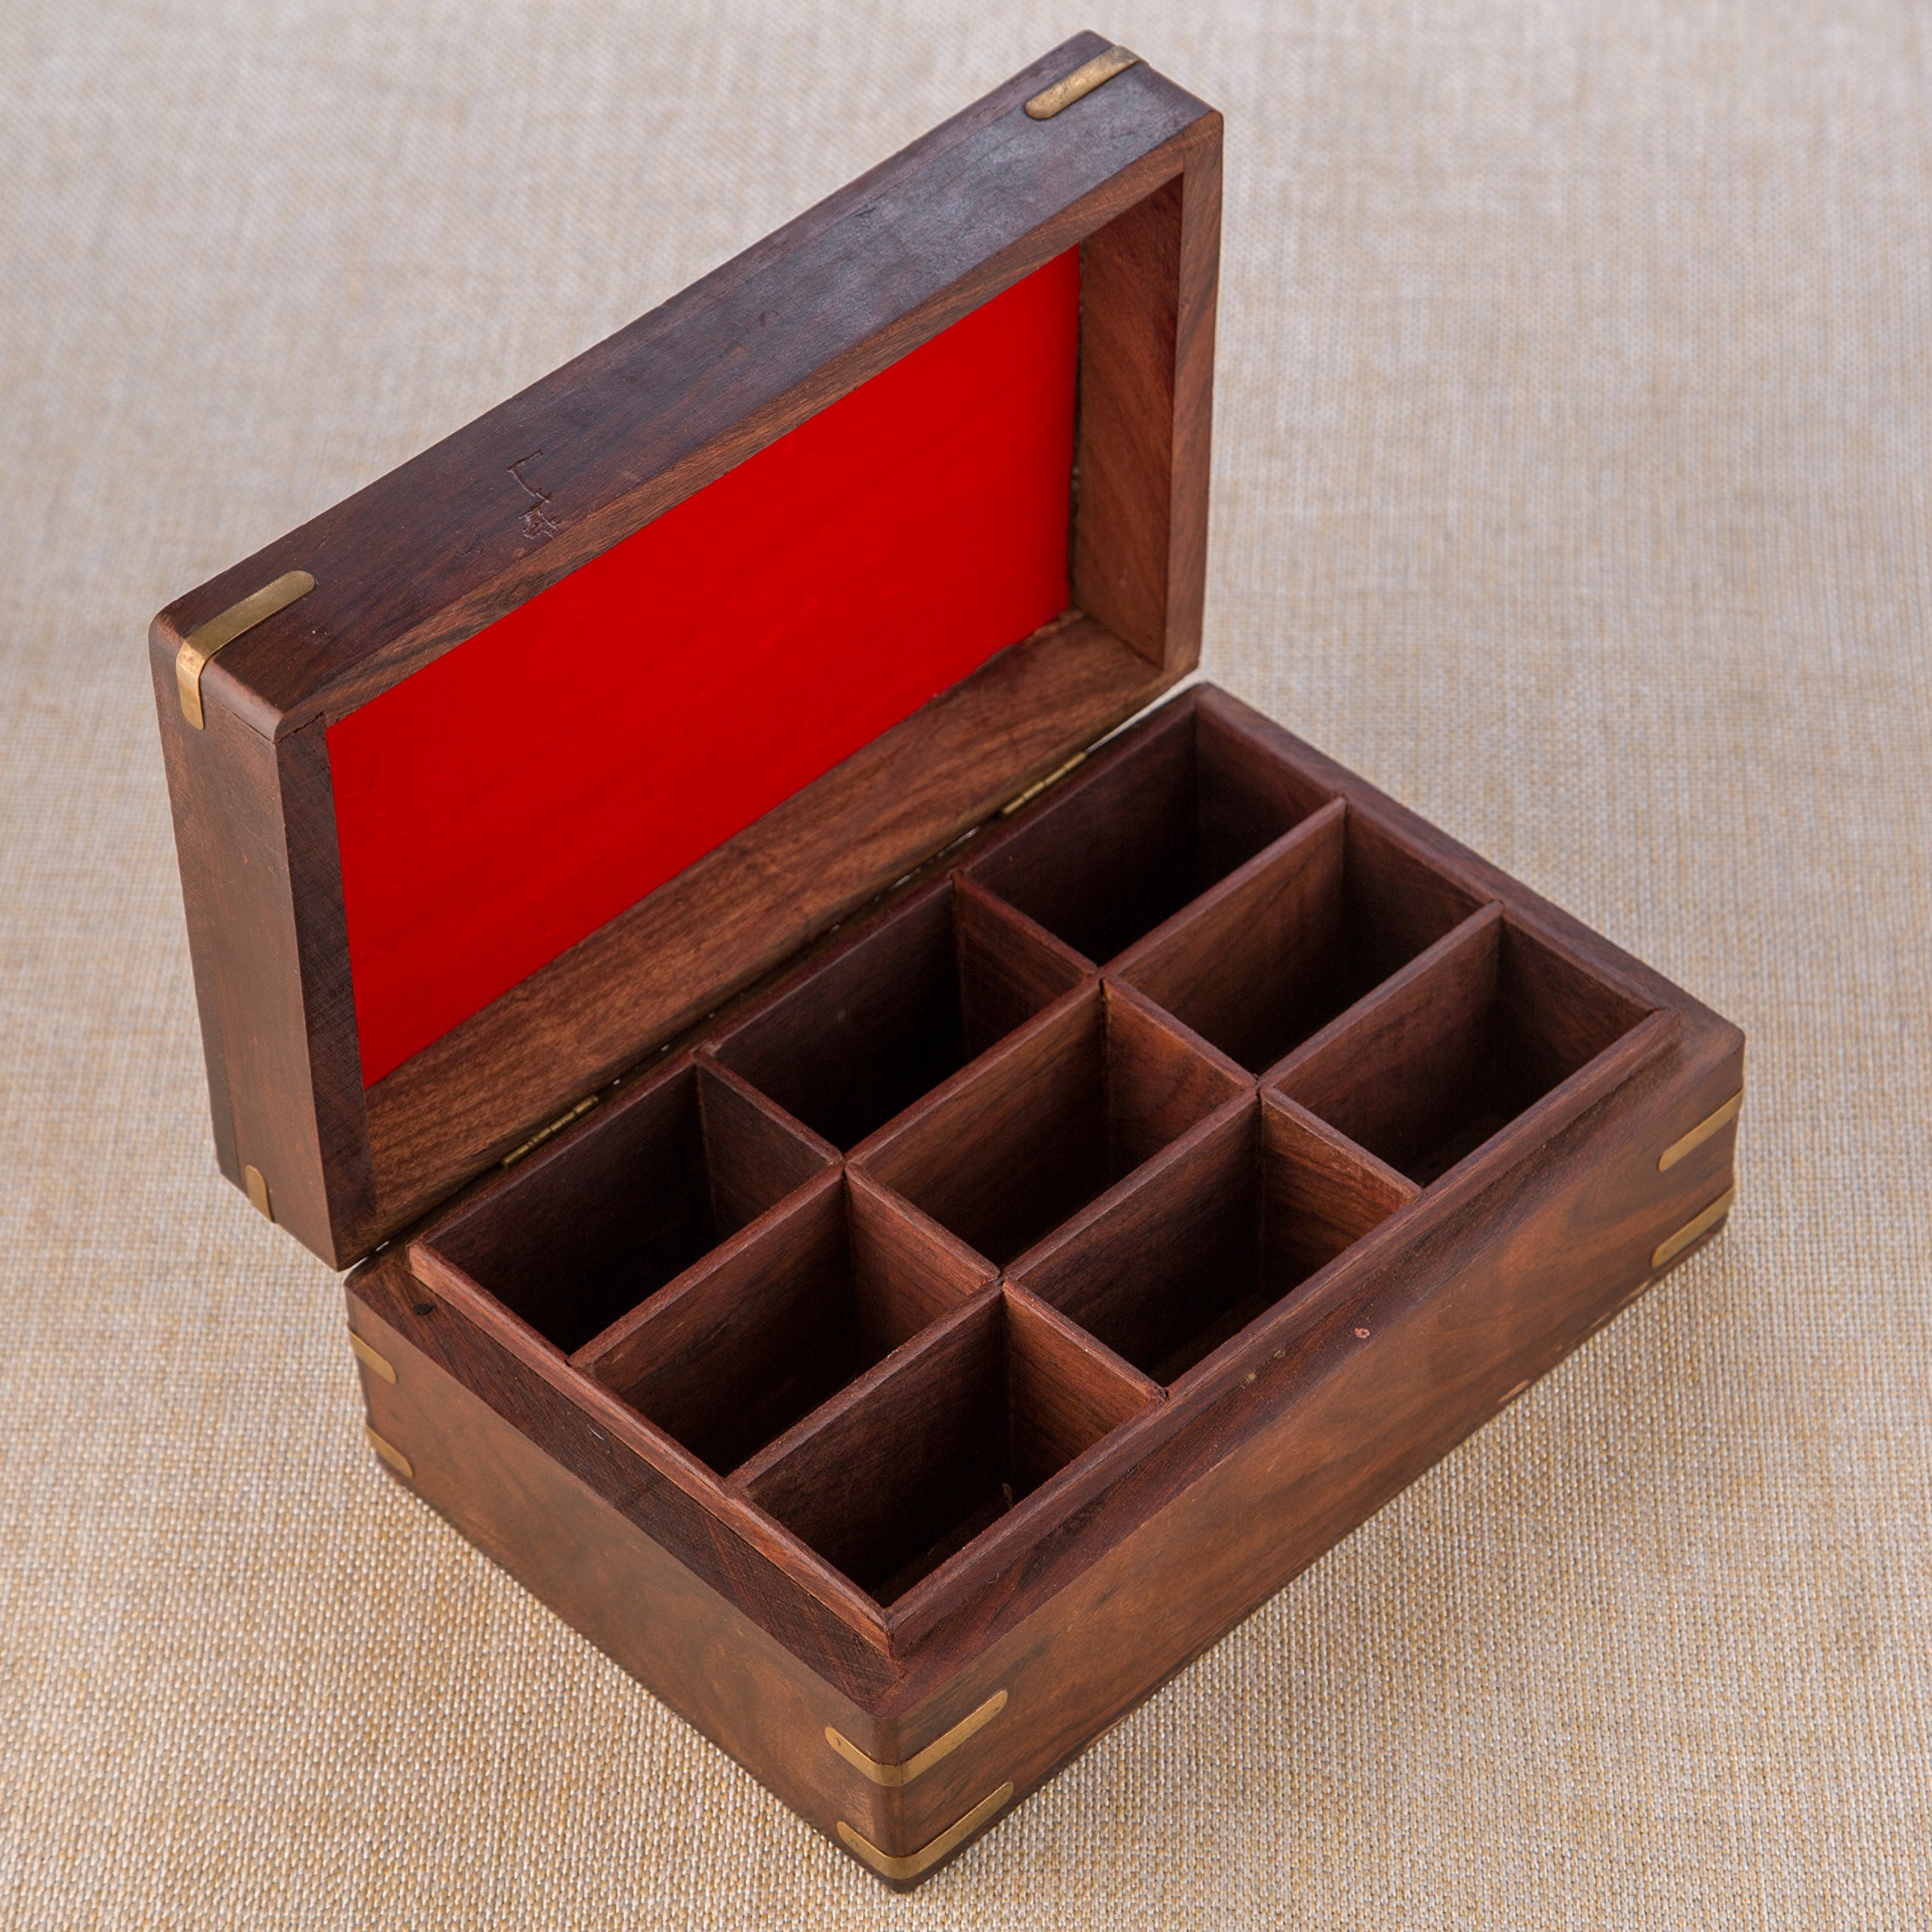 Rusticity Indian Rosewood Antique Treasure Storage Chest Box for Condiment Spice&Jewellery/Vintage Rustic Keepsake Trinket Organizer w/9 Compartments/Handmade Decorative Sheesham Wood Caddy Tea Bag by Rusticity (Image #6)